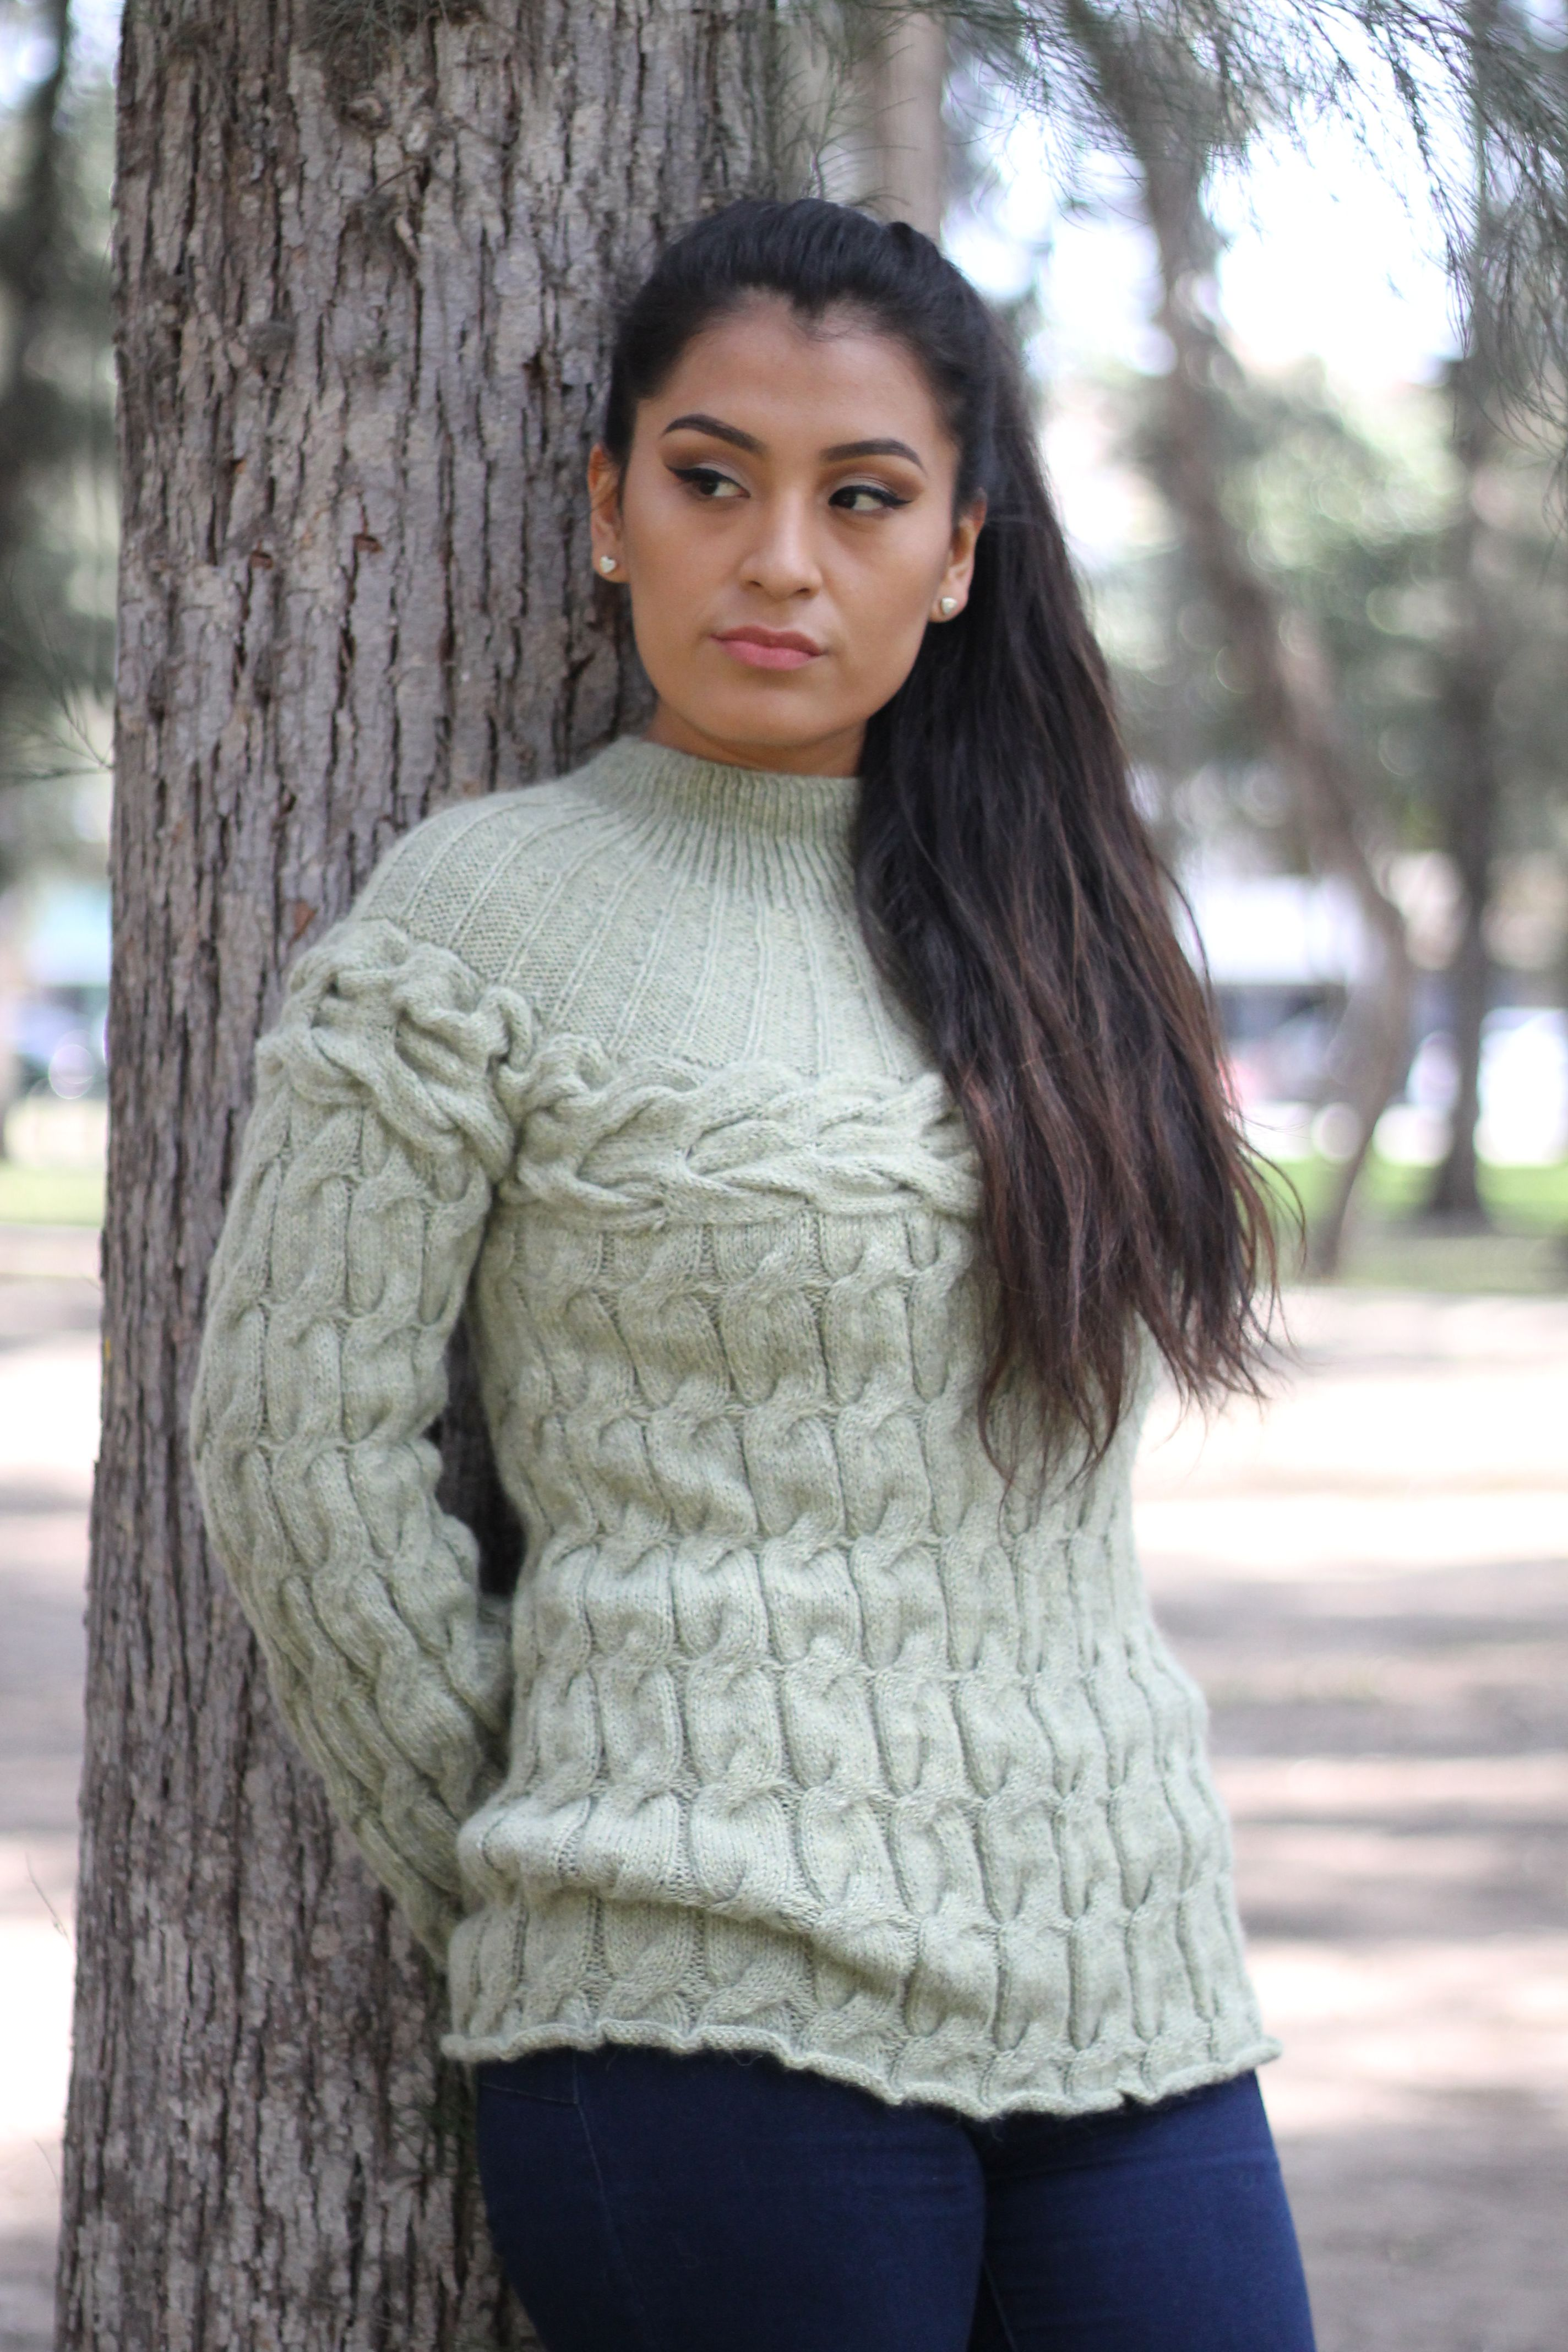 When You Use This Stylish Sweater You Will Find Comfort Because You Will Use A Garment 100 Baby Alpaca Wool Handmade Sweaters Stylish Sweaters Alpaca Sweater